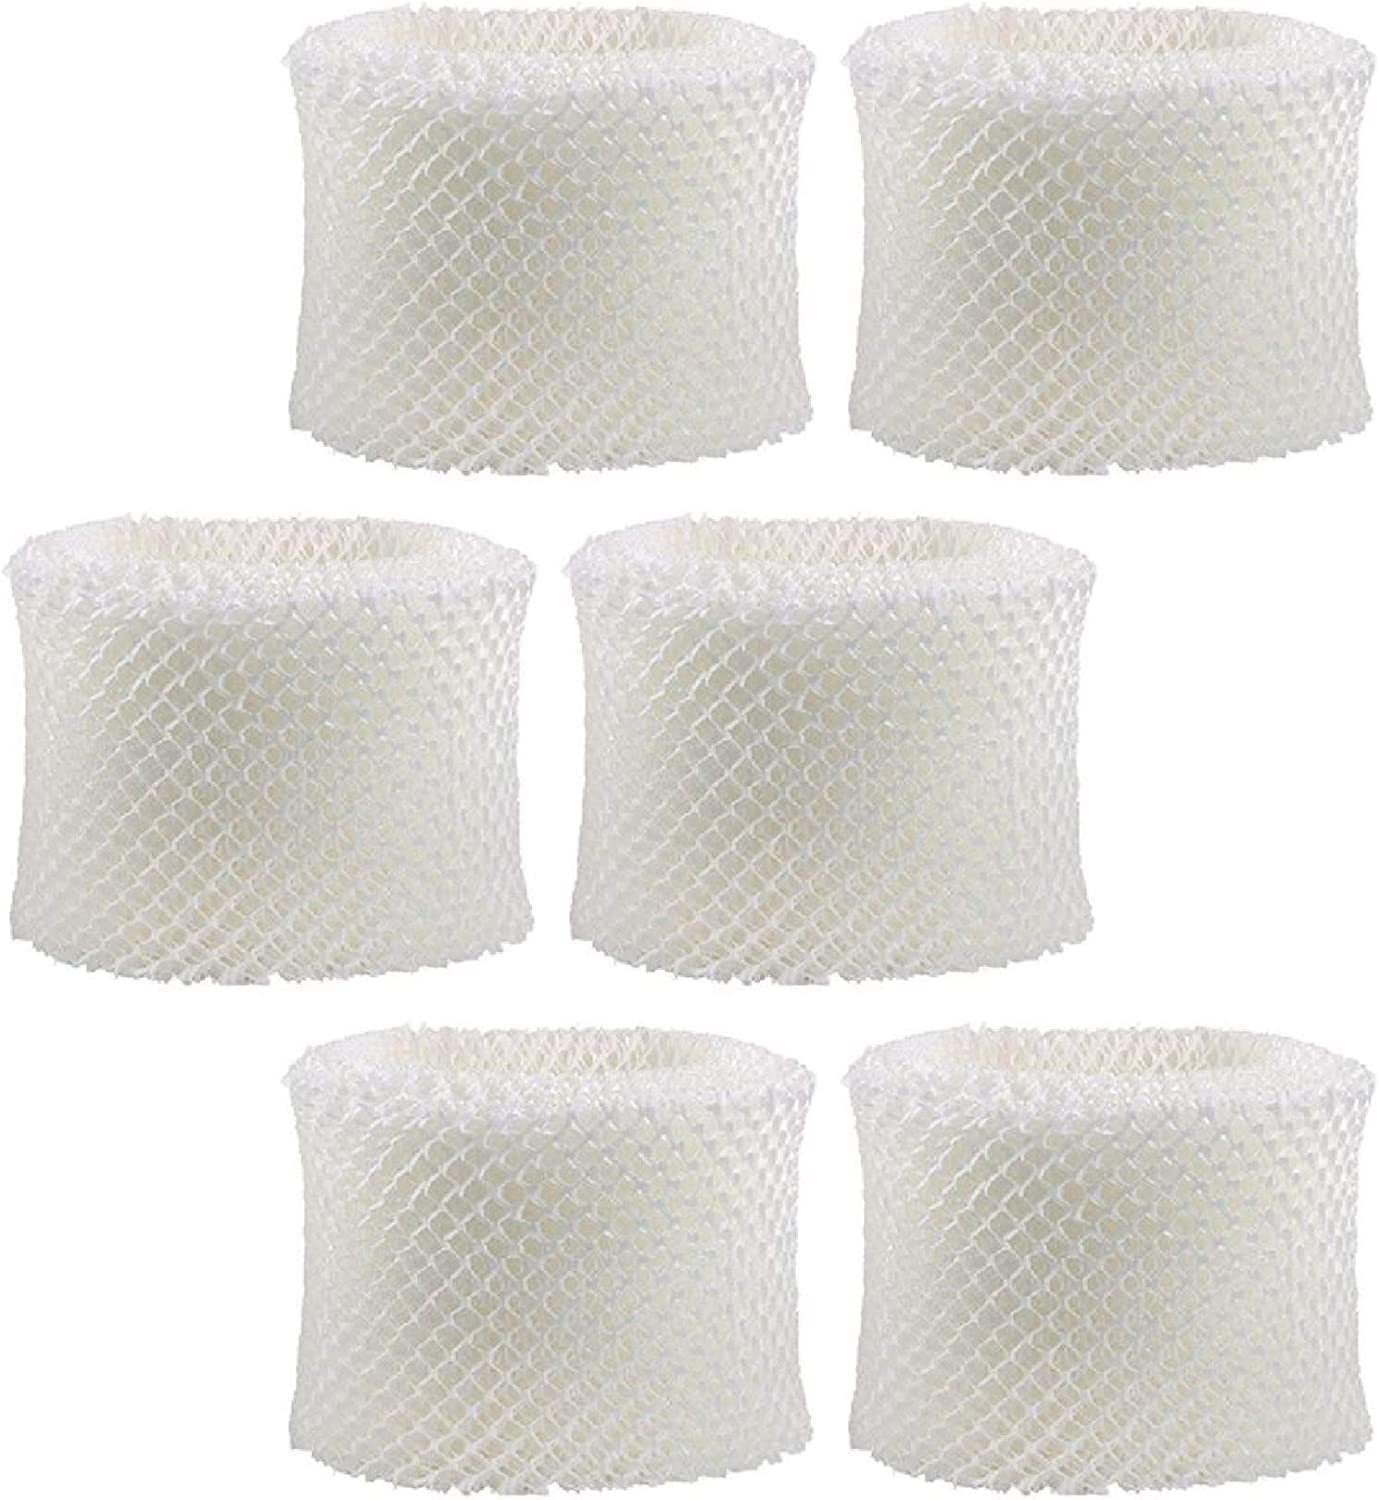 Nispira Max 55% OFF Max 50% OFF 6 Packs Wick Filter with H Compatible Replacement Holmes